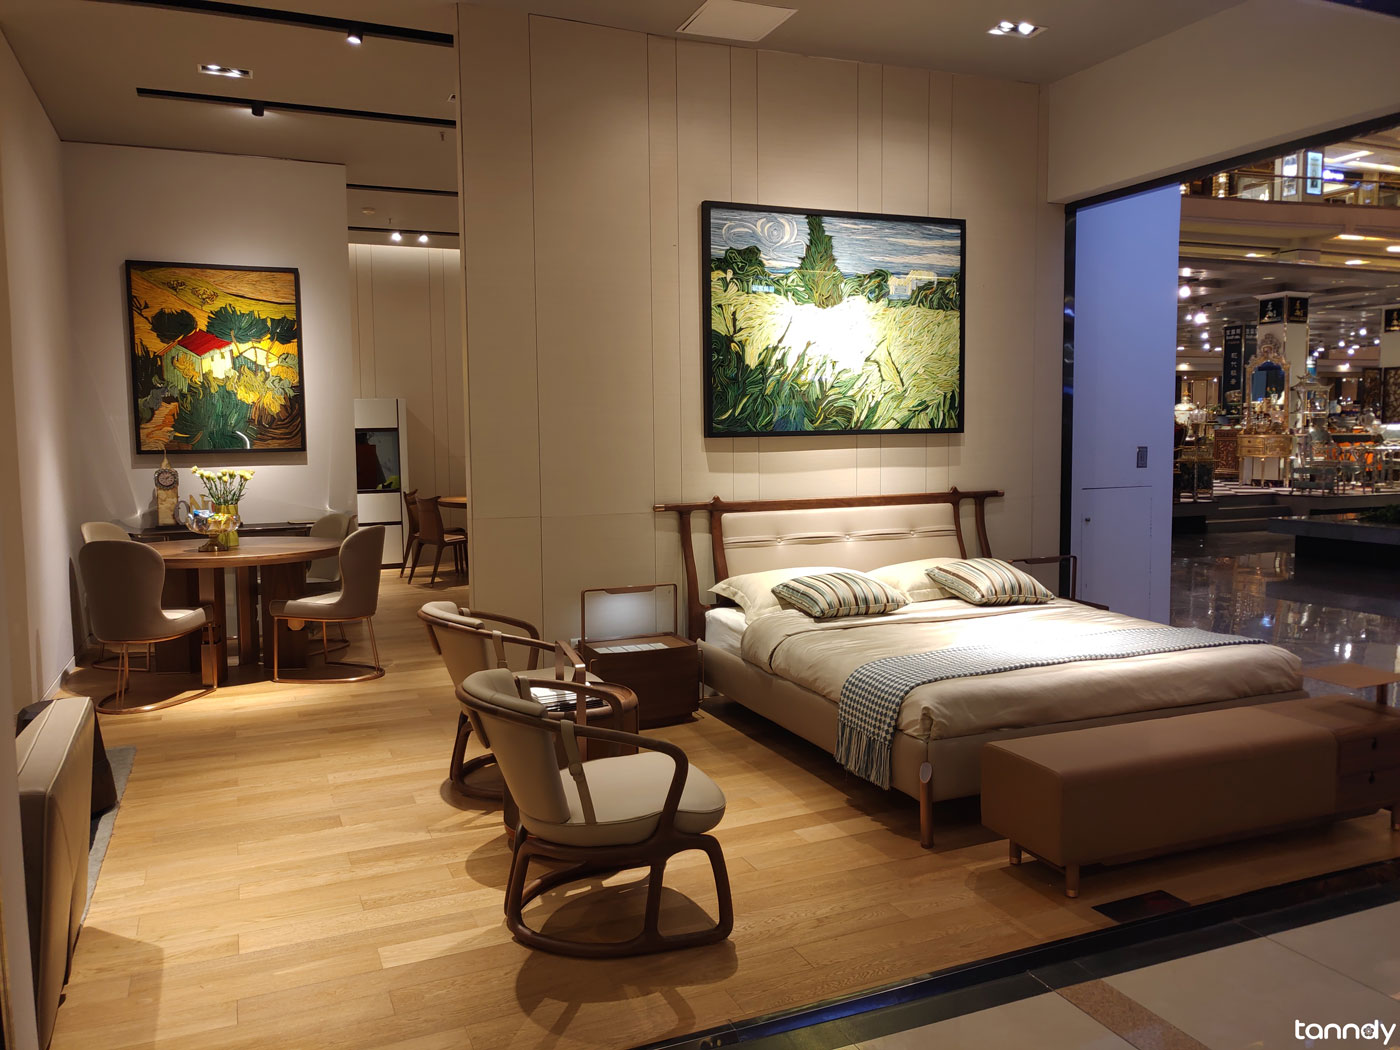 Furniture shop in Foshan Louvre furniture market